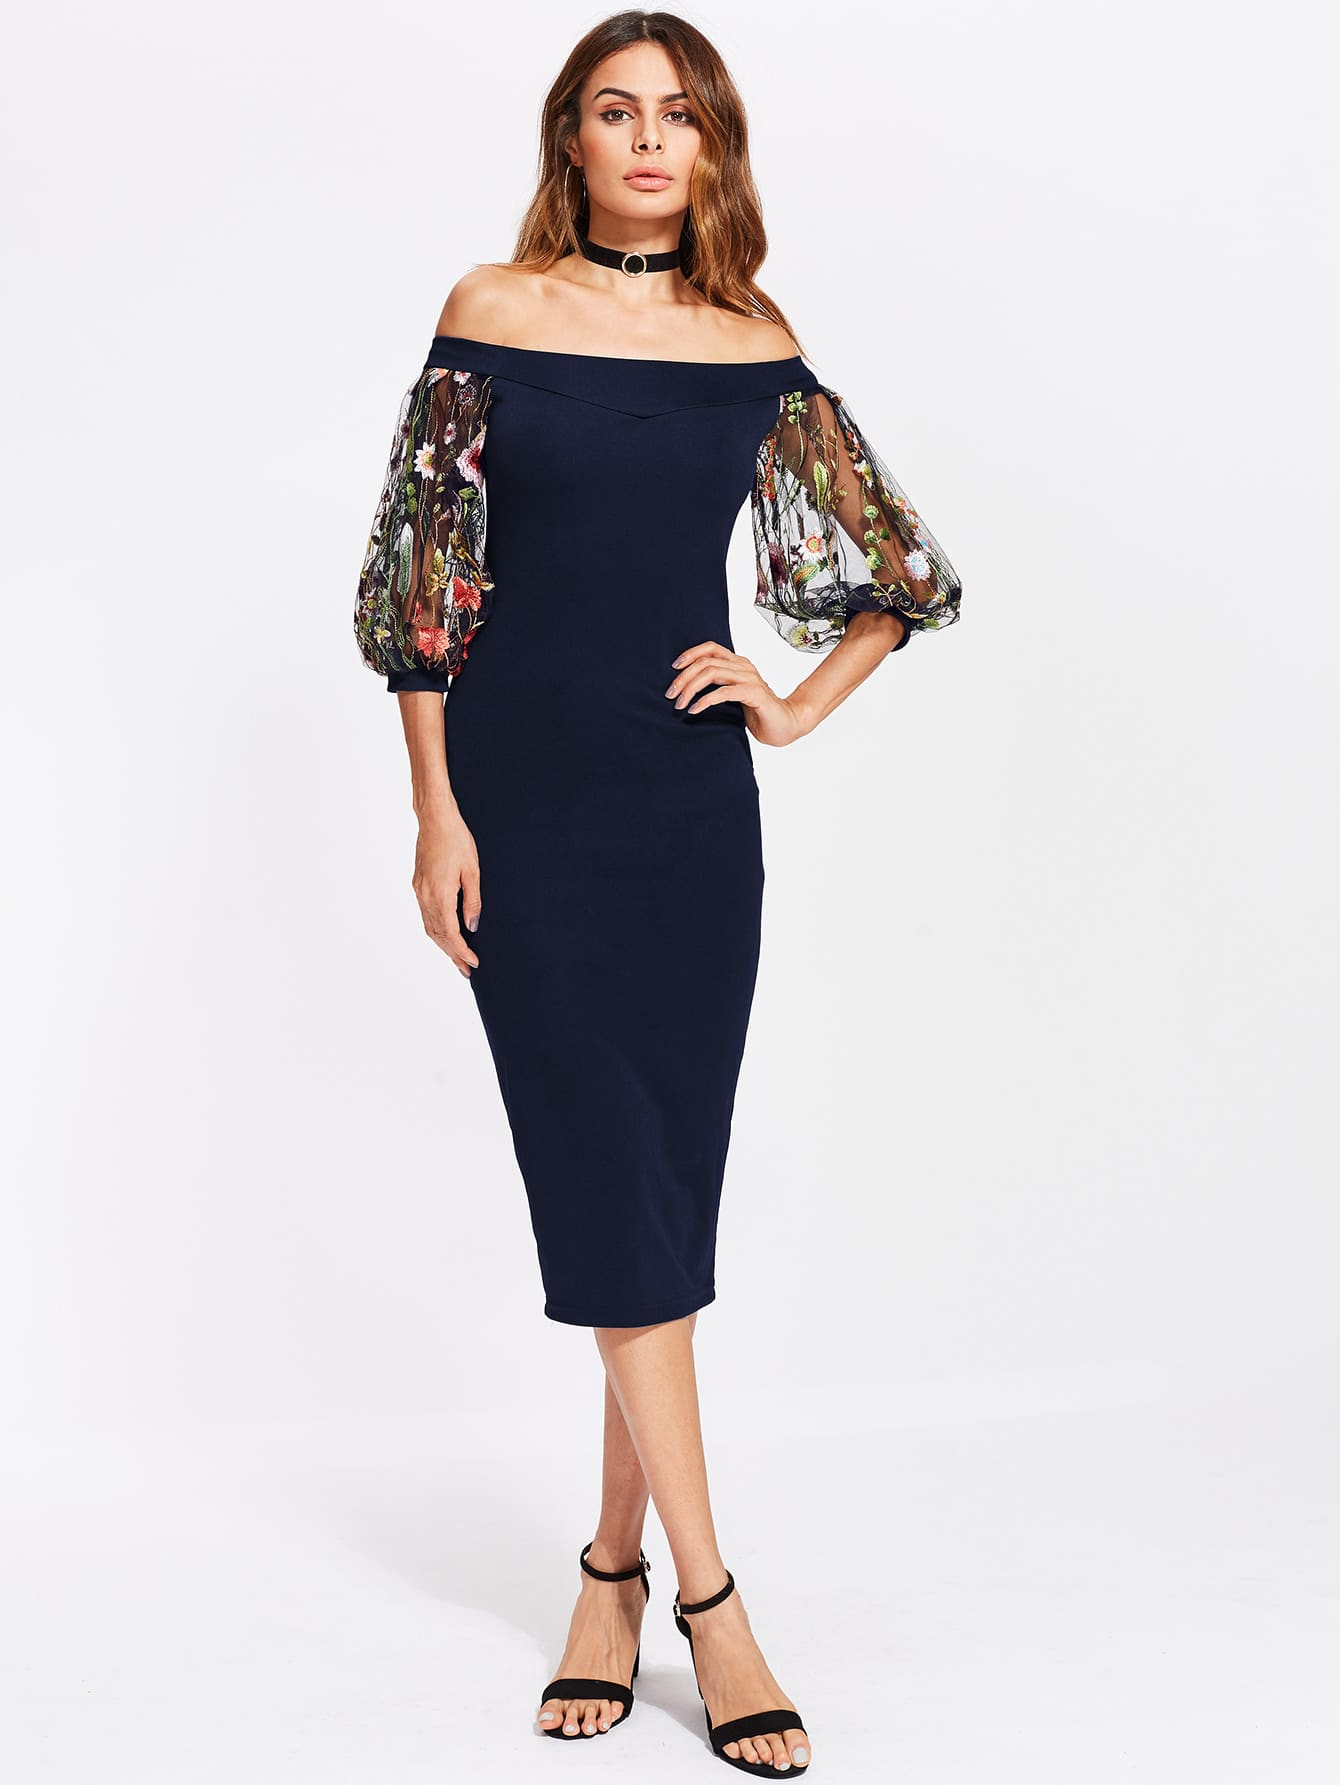 Bardot Dress With Embroidered Mesh Puff Sleeve nuit w edp spr